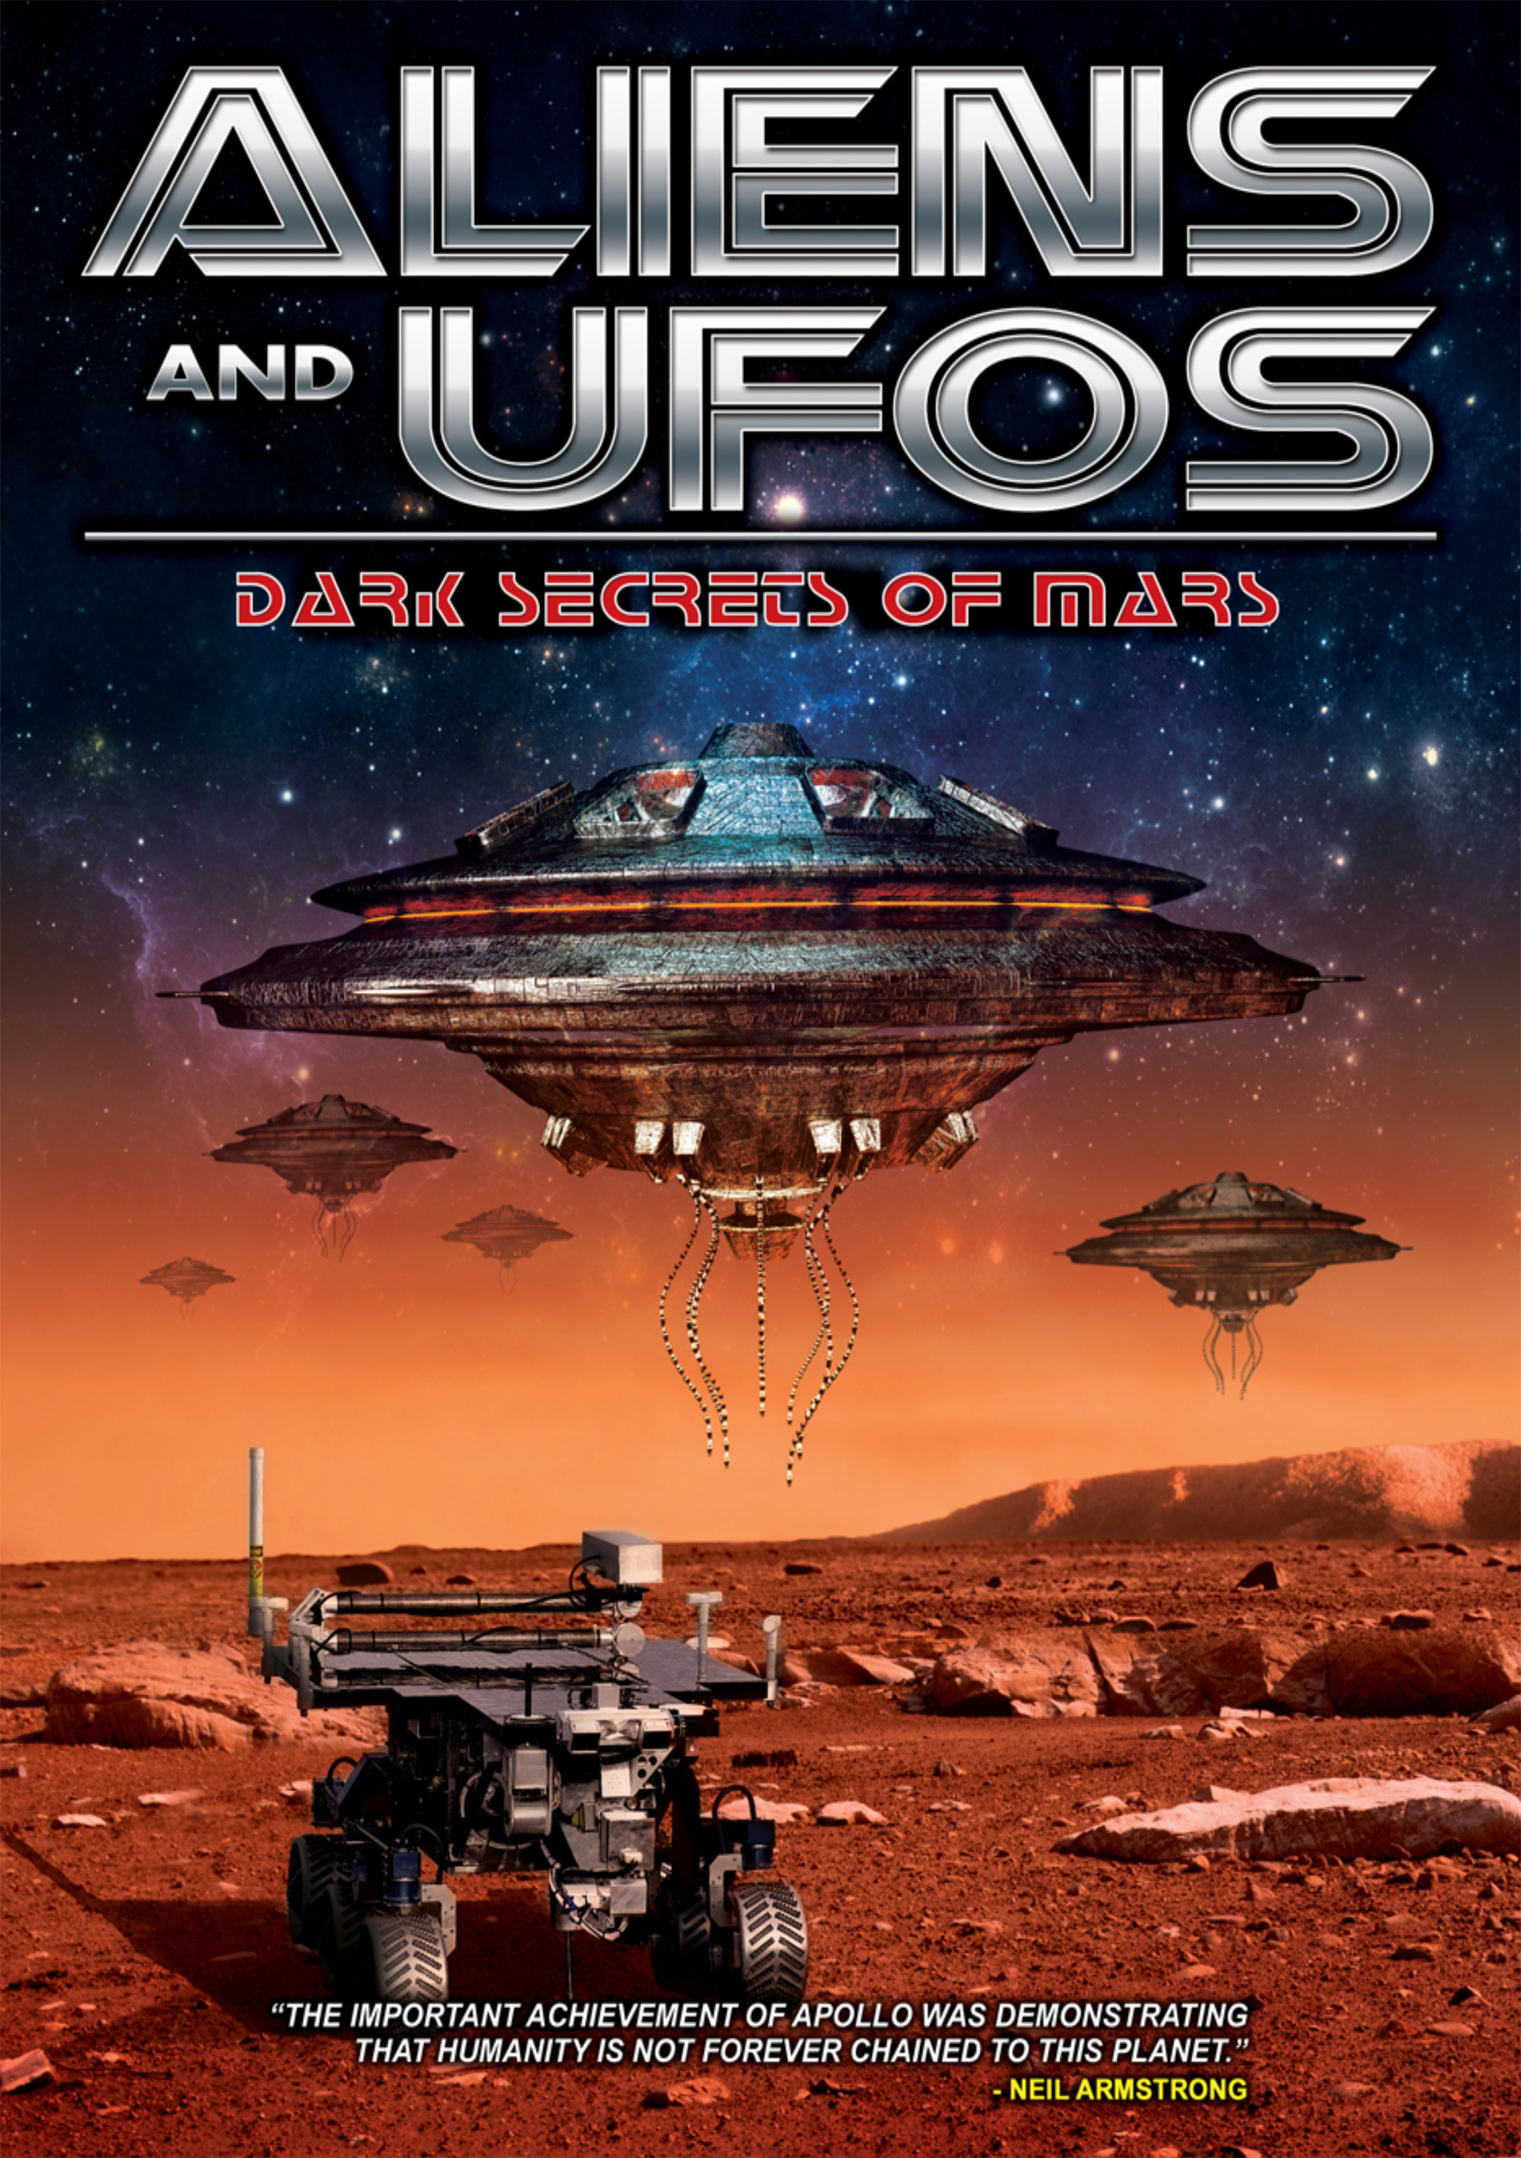 Aliens and UFOs: Dark Secrets of Mars